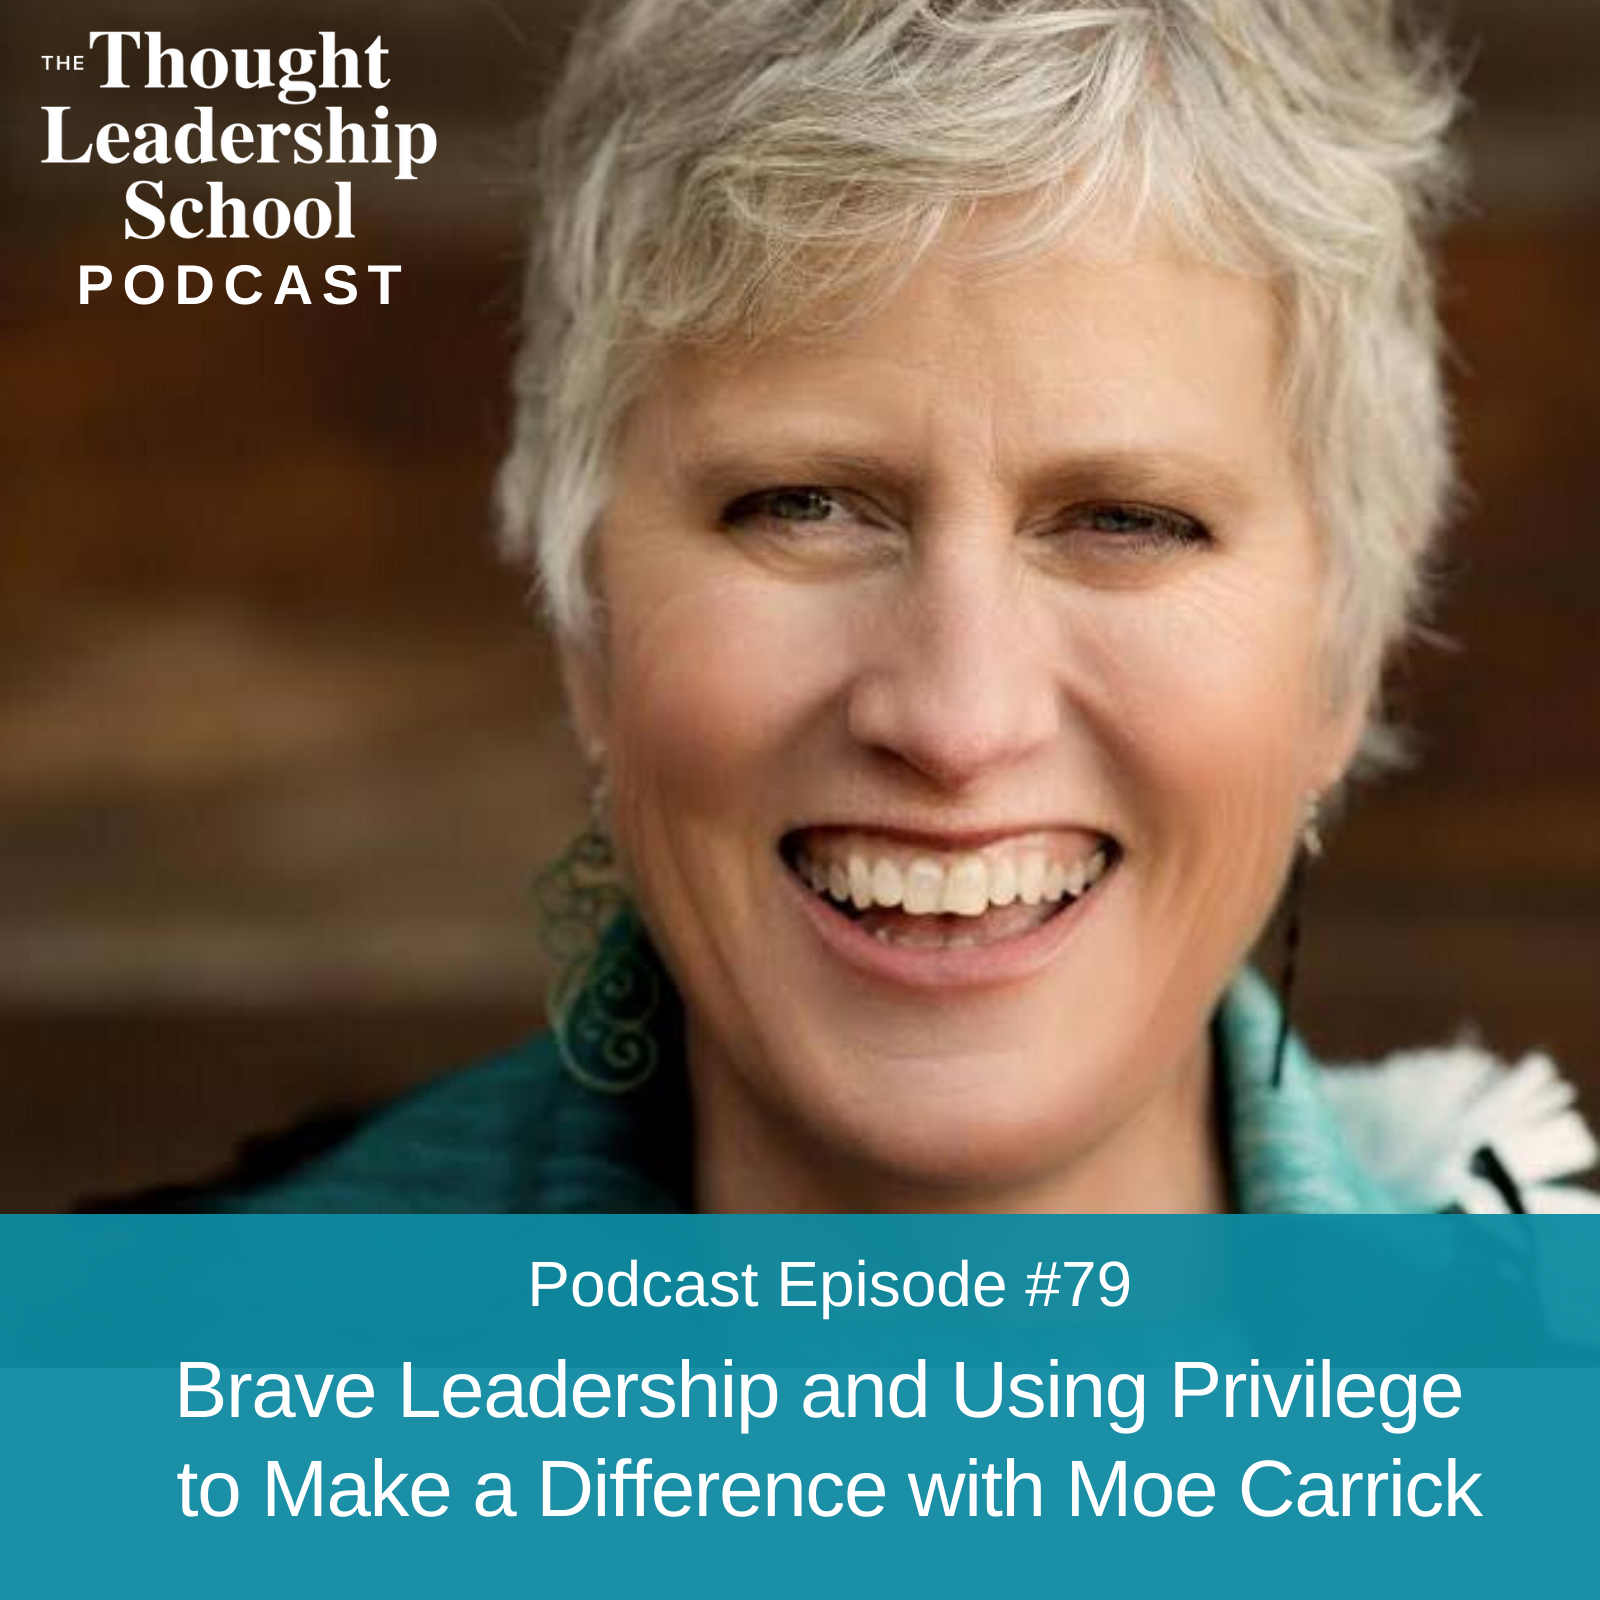 Ep #79: Brave Leadership and Using Privilege to Make a Difference with Moe Carrick